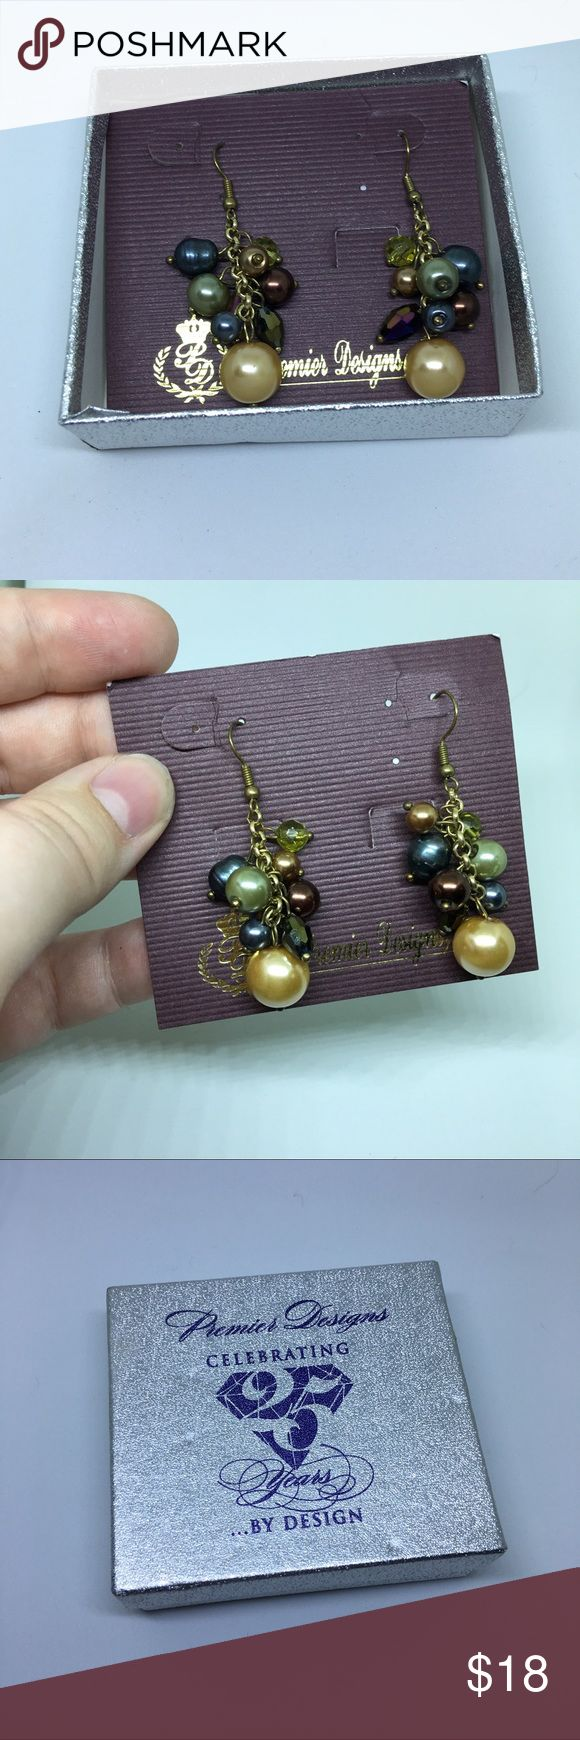 """Leilani Premier Designs Earrings New in box. Leilani Premier Designs Earrings about 2"""" long. Gold Plated hardware with freshwater pearls, aurora borealis, glass, and beads. Colors are blues, creams, and purples. From 2012 catalog.  Pet Friendly Home, Smoke Free Home , No trades. Offers, Bundles, and Questions Encouraged Premier Designs Jewelry Earrings"""